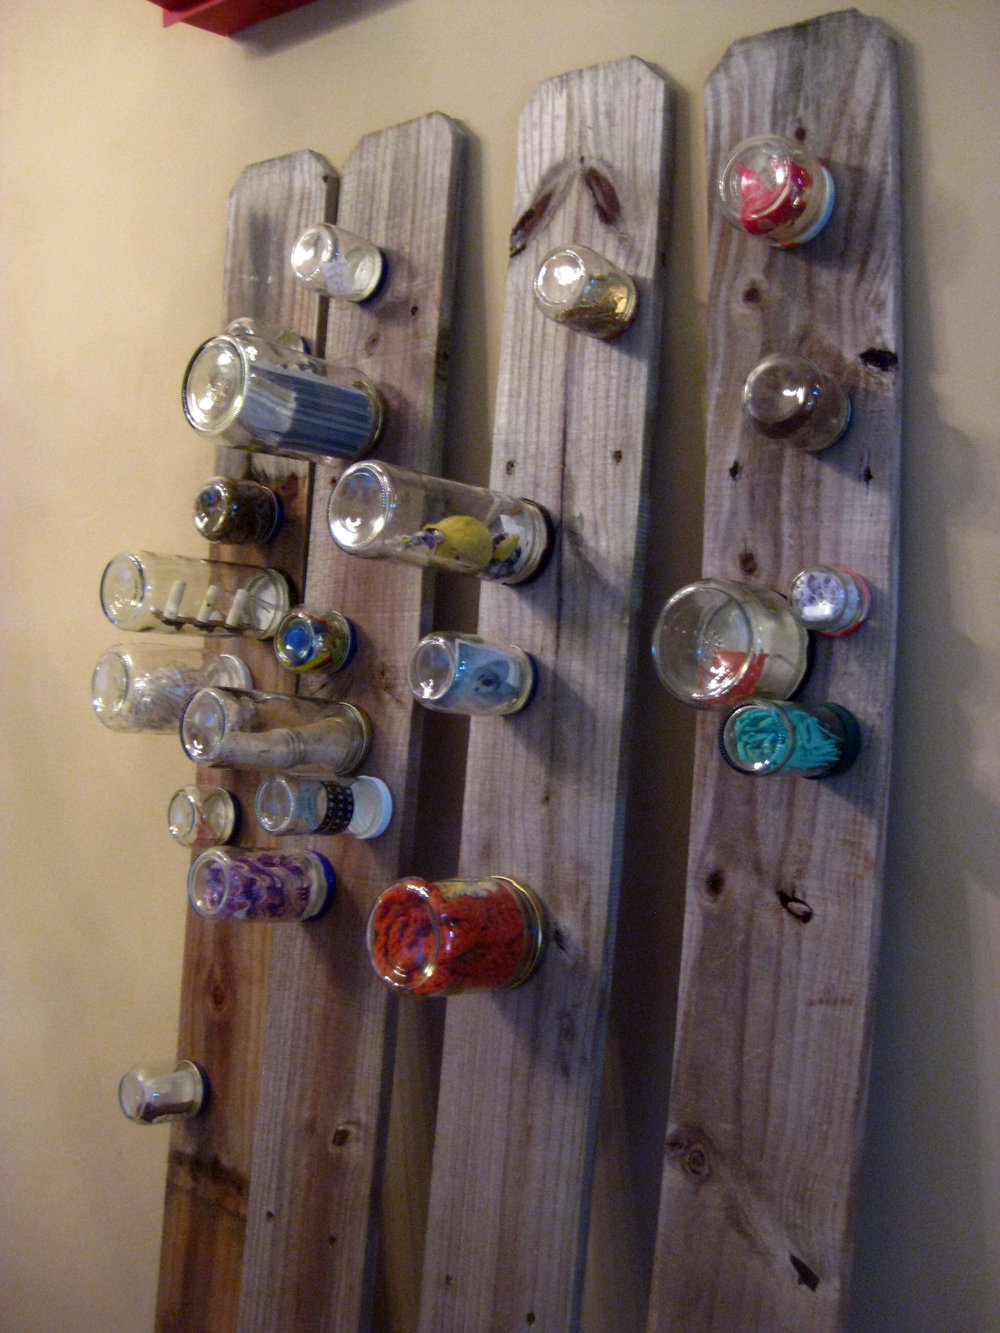 SOLD - Found, Kept. Kept objects, found wood, jars. 6' x 6